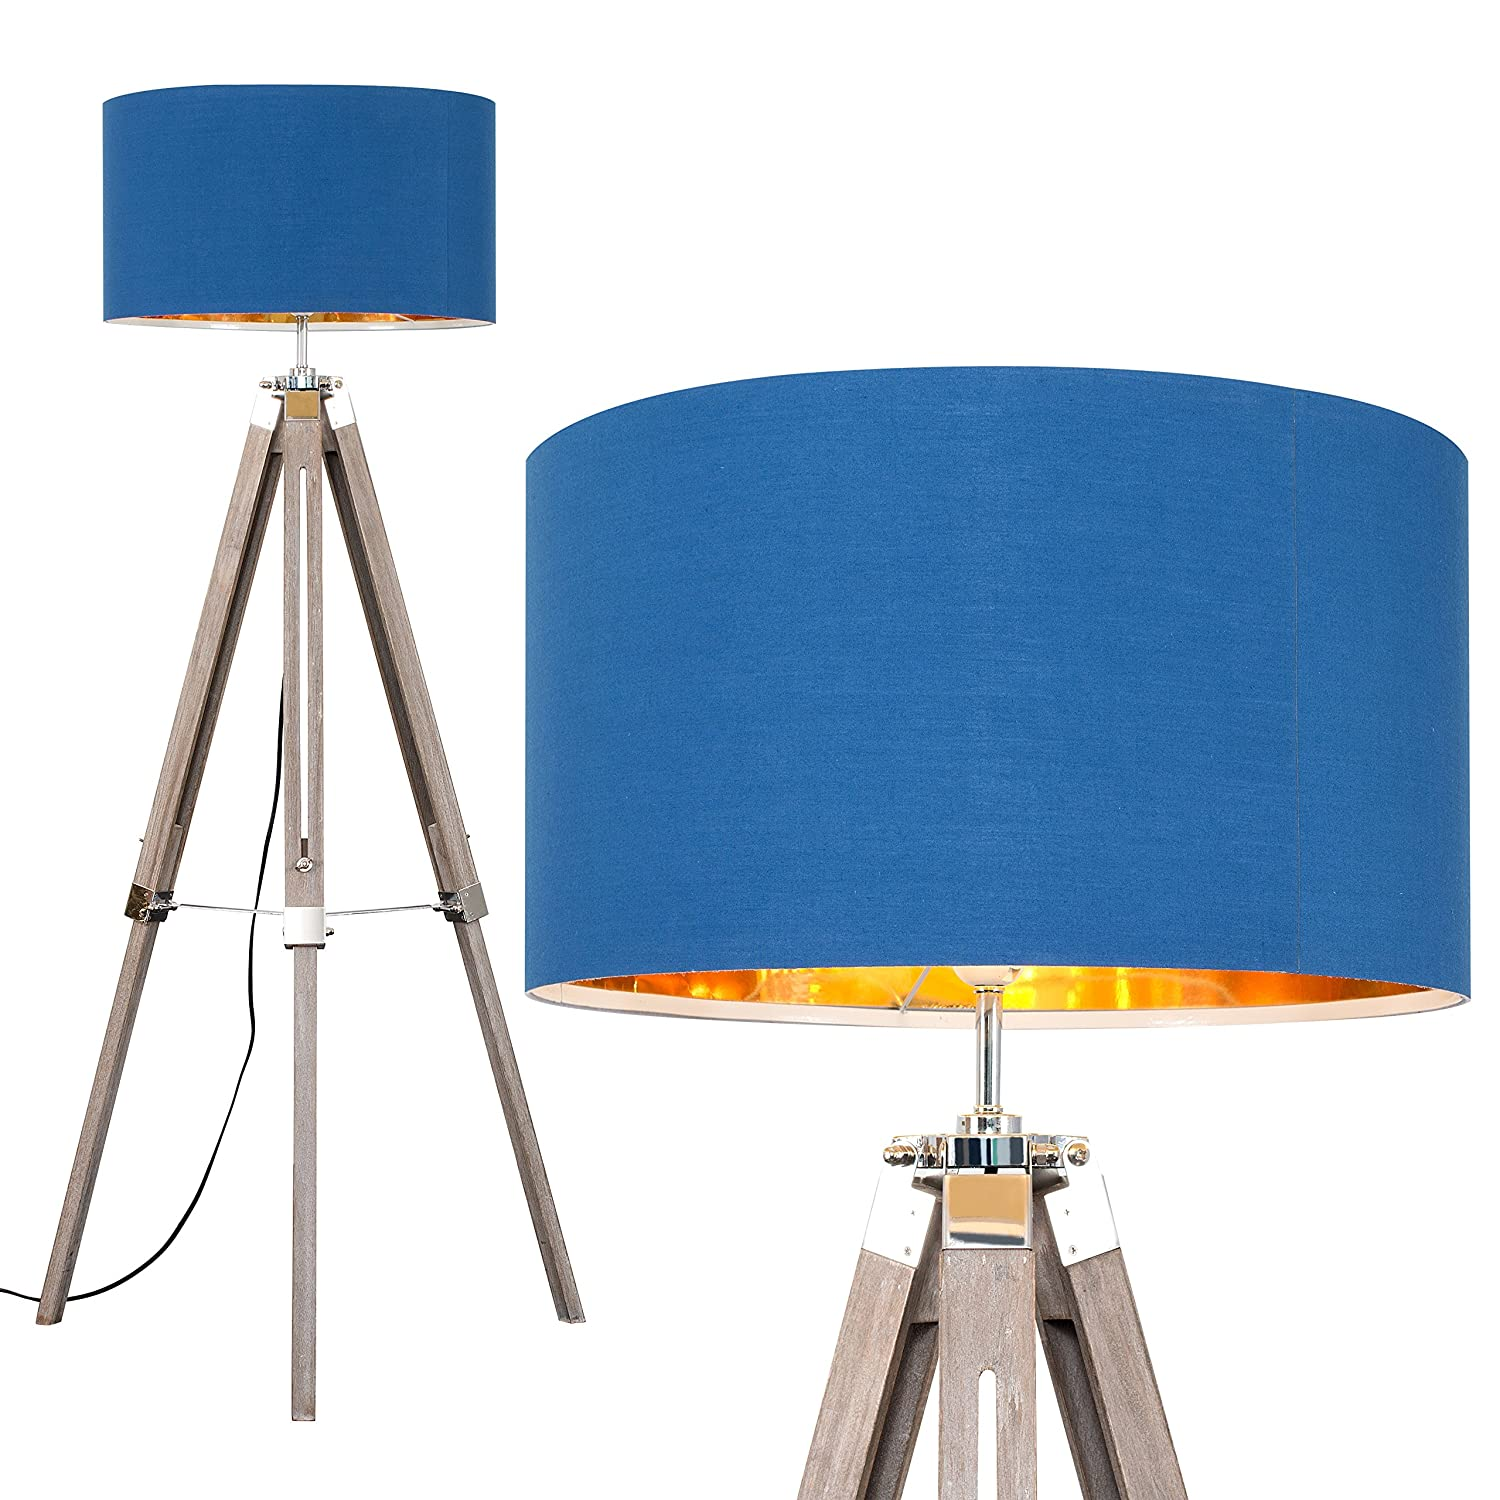 Modern Distressed Wood and Silver Chrome Tripod Floor Lamp with a BlueGold Cylinder Light Shade Complete with a 6w LED GLS Bulb [3000K Warm White]